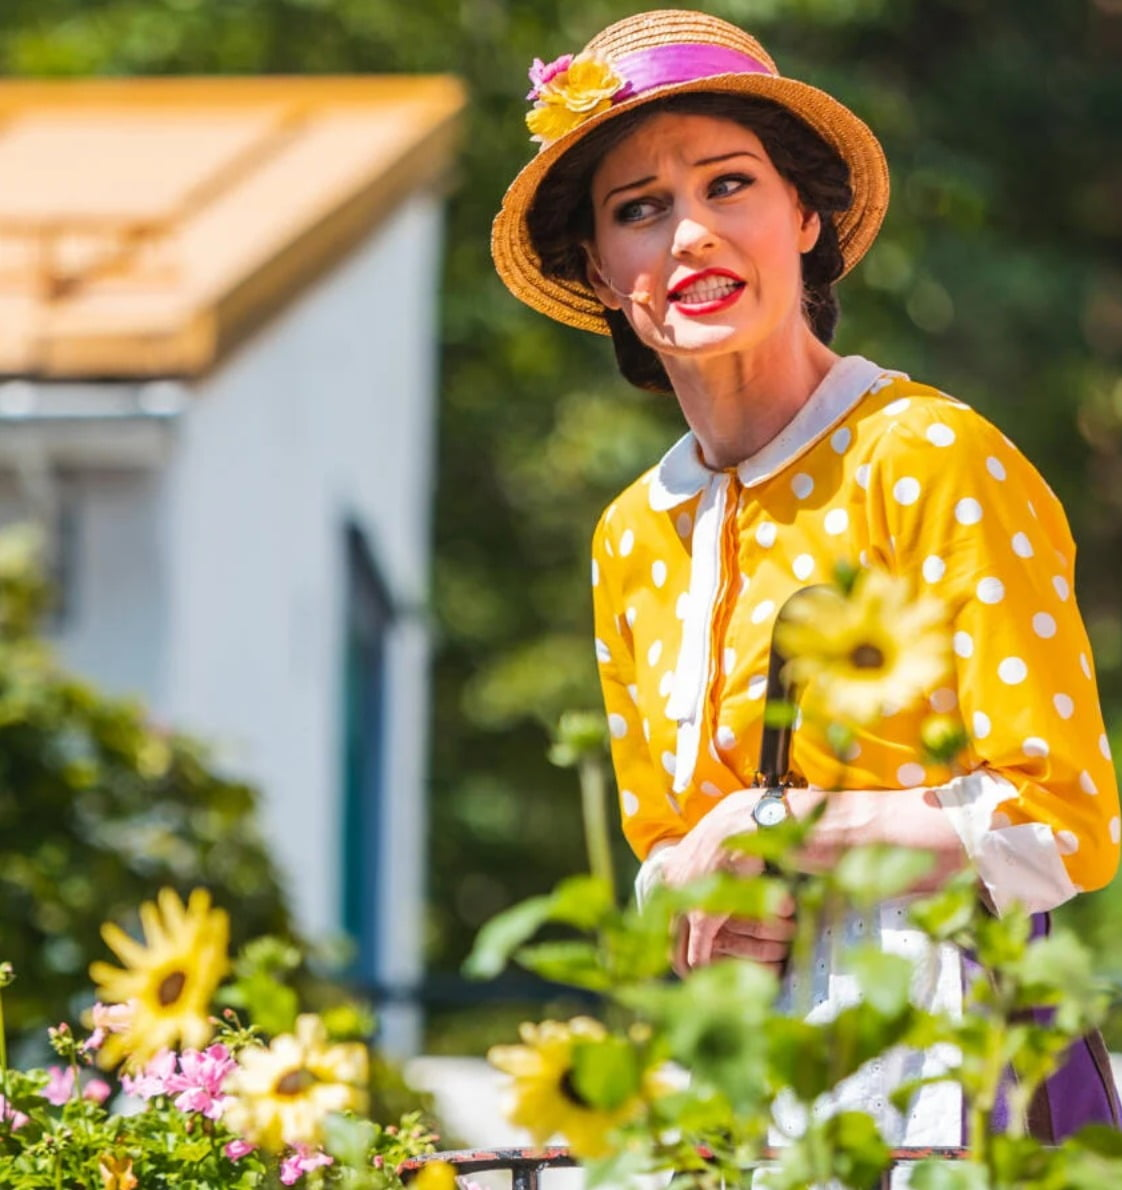 People in nature, Facial expression, Sun hat, Smile, Photograph, Plant, Flower, Orange, Happy